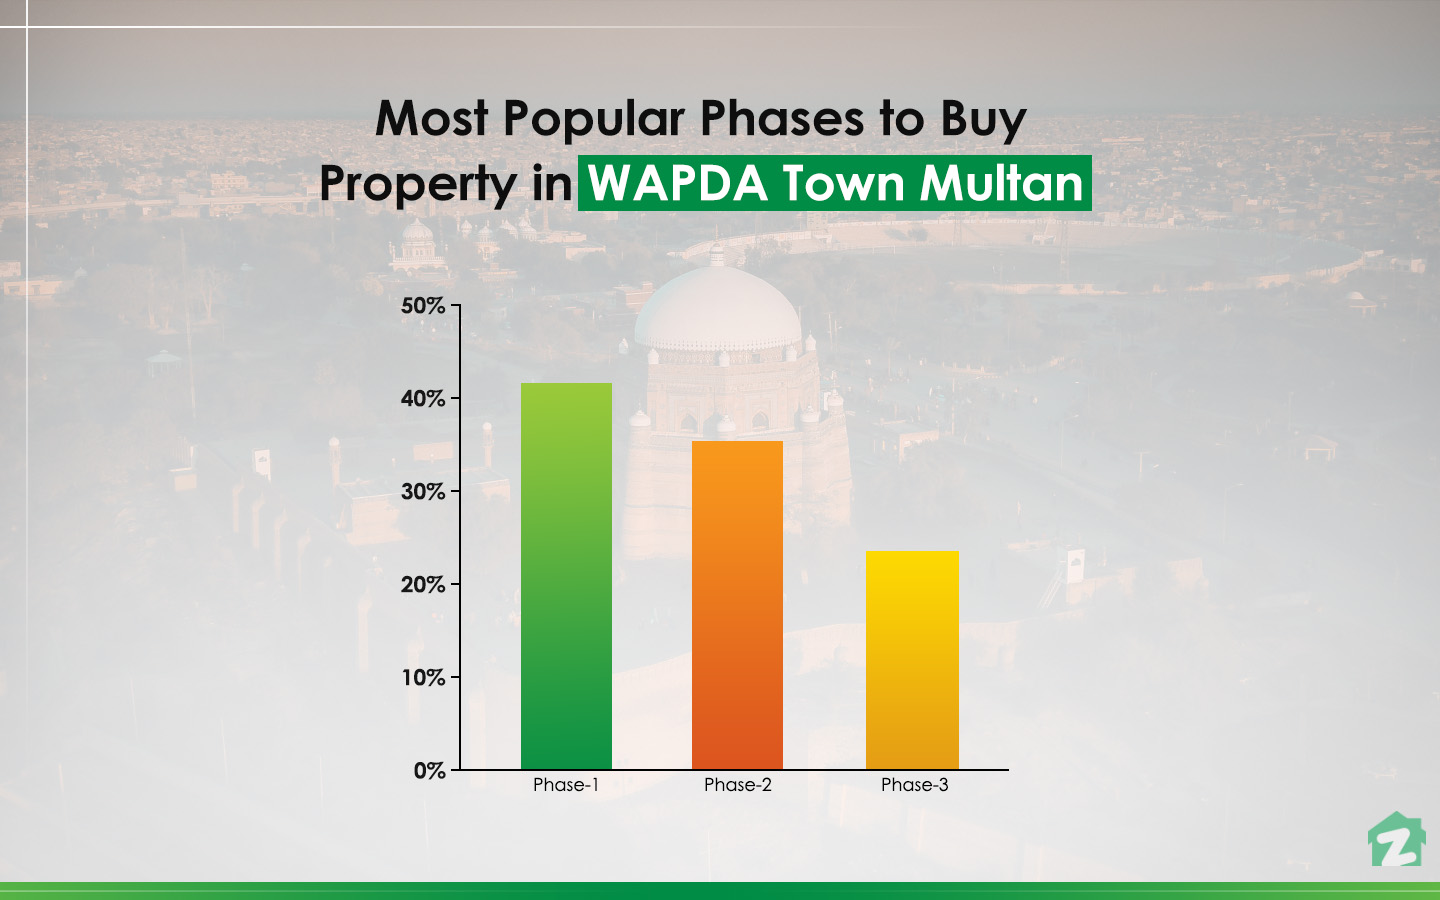 Most Popular Phases to Buy Property in WAPDA Town, Multan